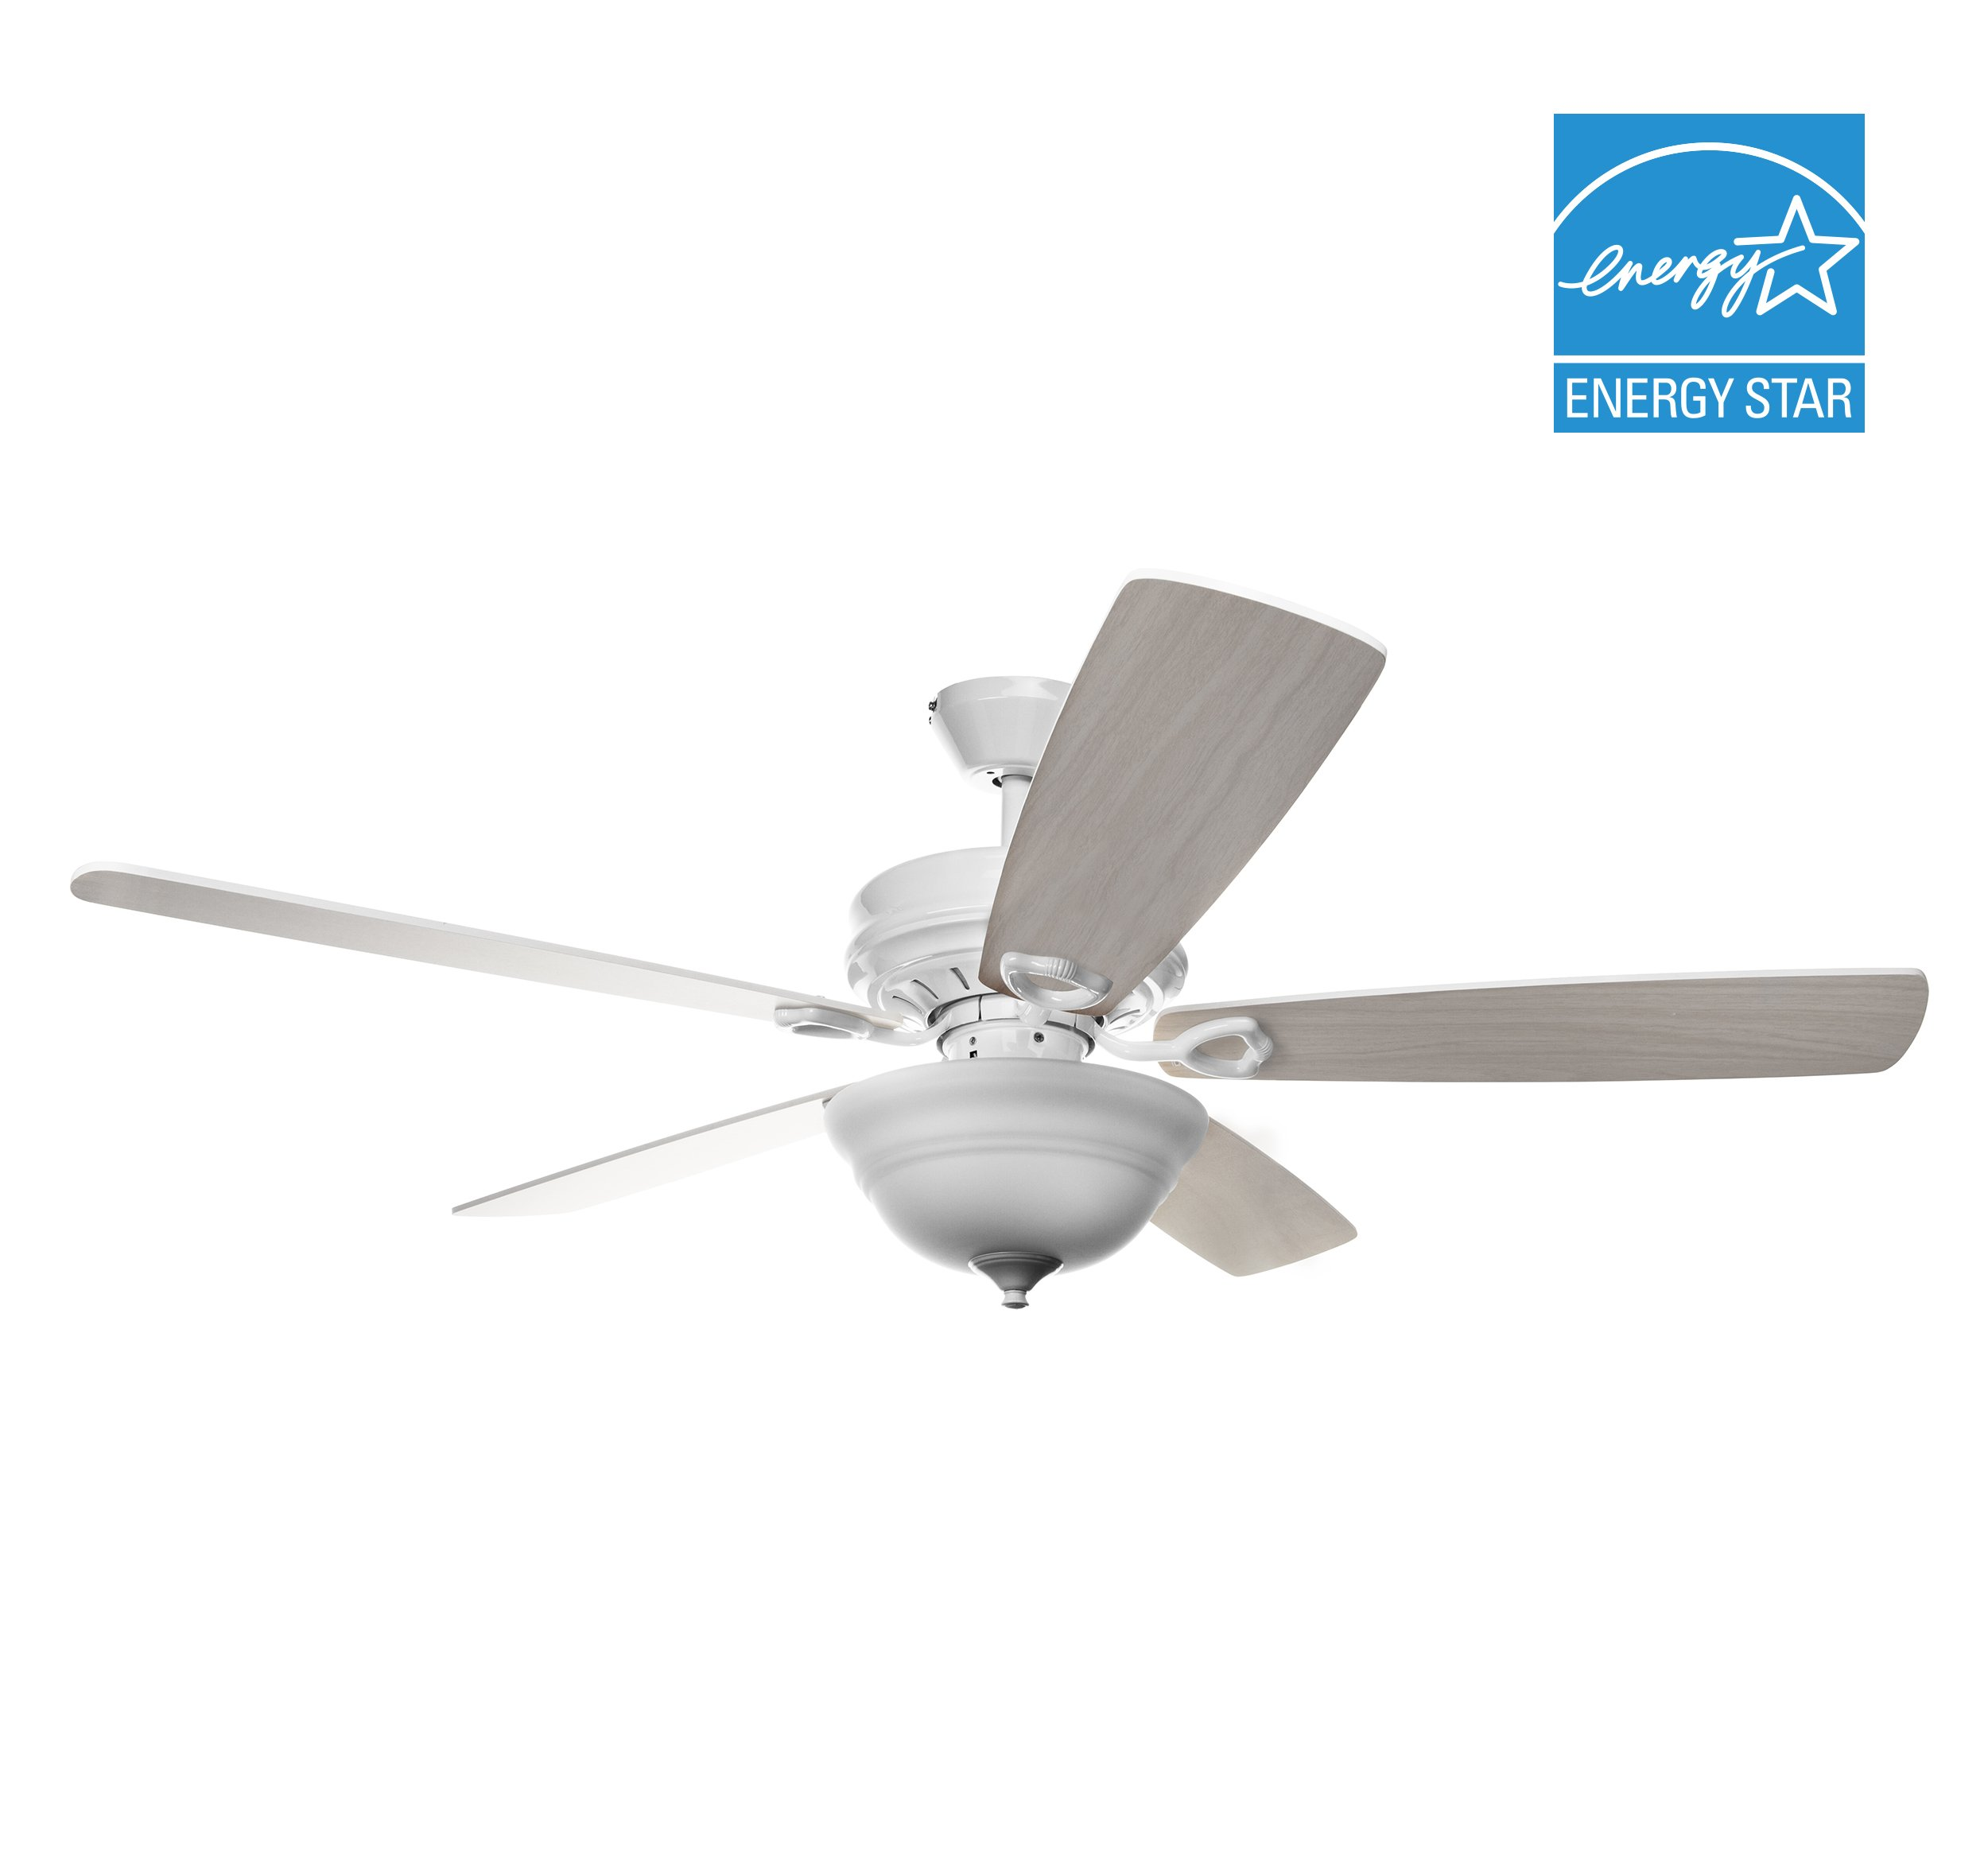 Hyperikon 52 Inch Ceiling Fan with Remote Control - Indoor Light Wood White Ceiling Fan, Energy Star - White Fixture with Five Maple Blades and Frosted Dome Light - Bulb Not Included